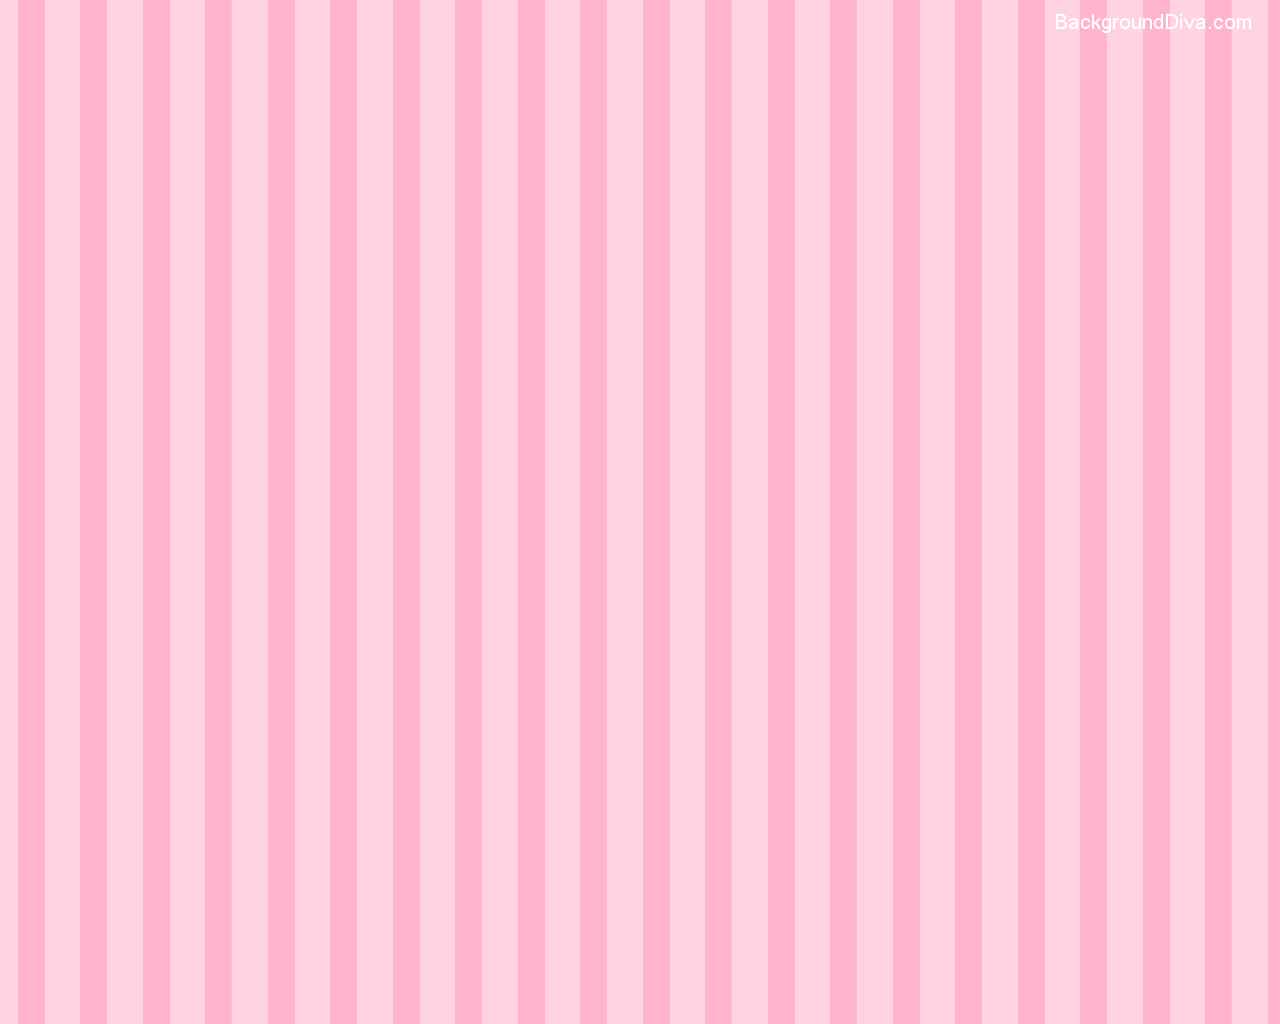 <b>Pink</b> Pattern <b>Wallpapers</b> - WallpaperPulse